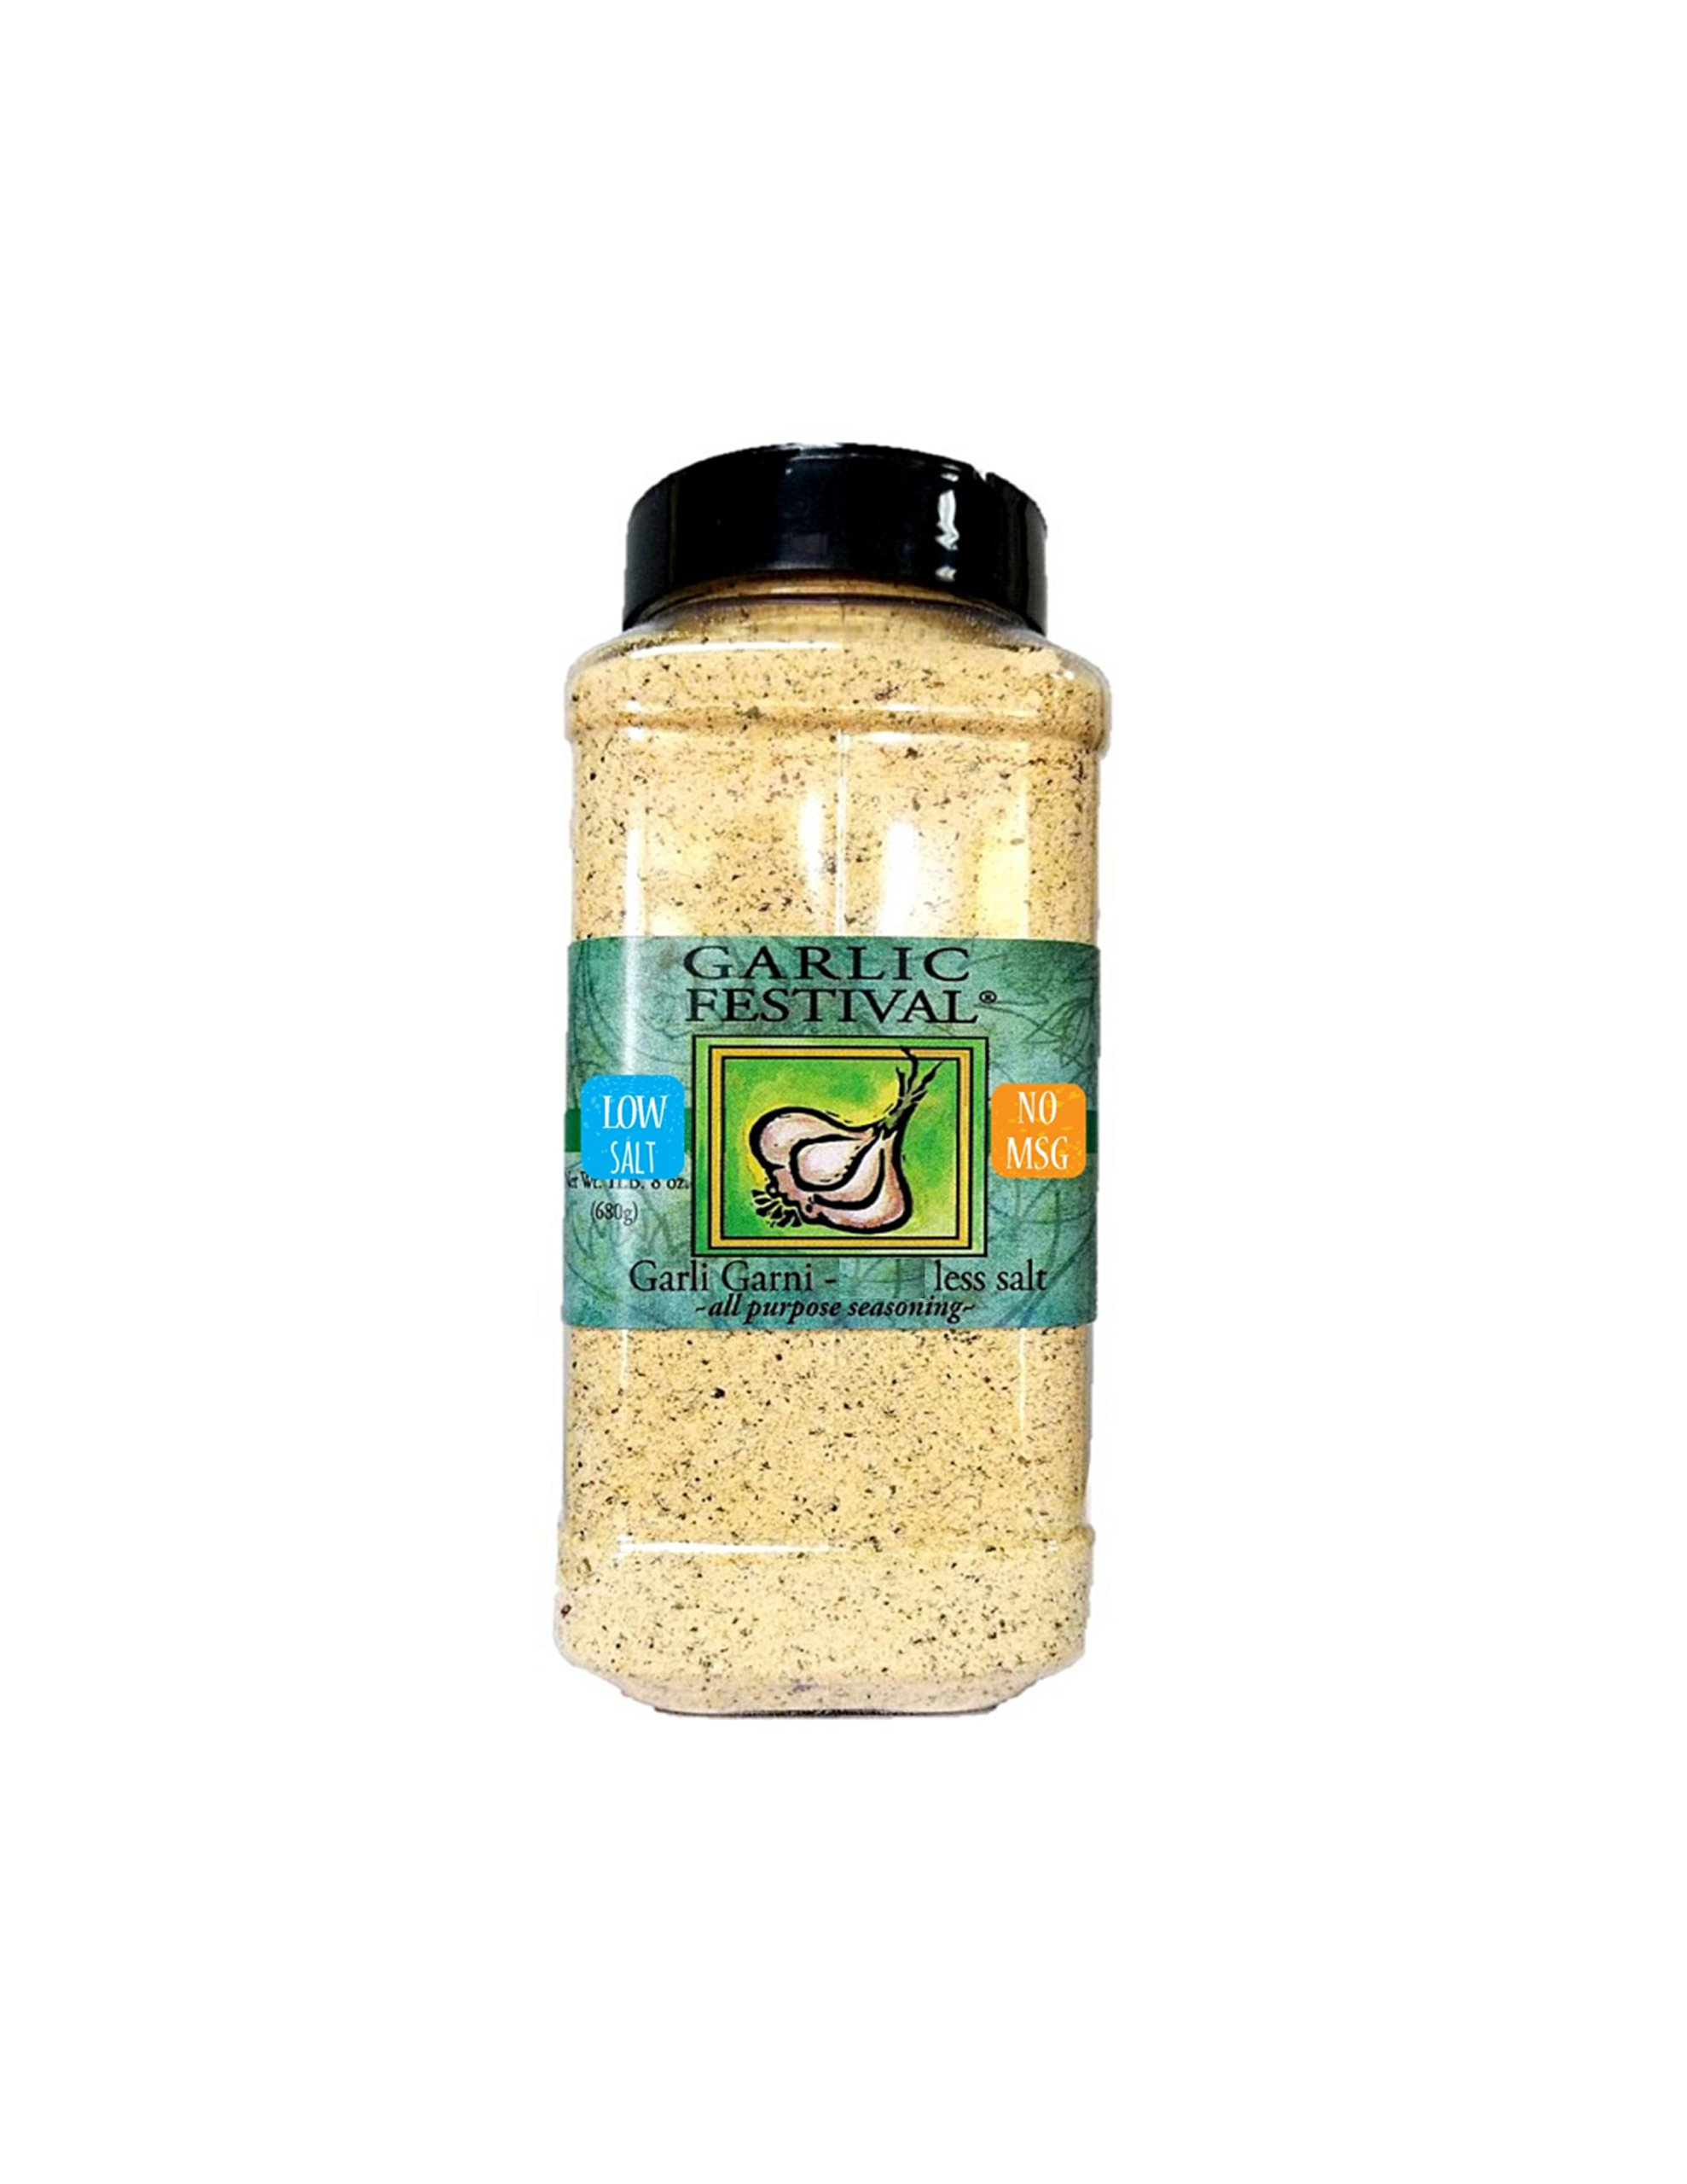 Garlic Festival Low Sodium Garli Garni Garlic Seasoning 24 Oz. Gluten Free No MSG